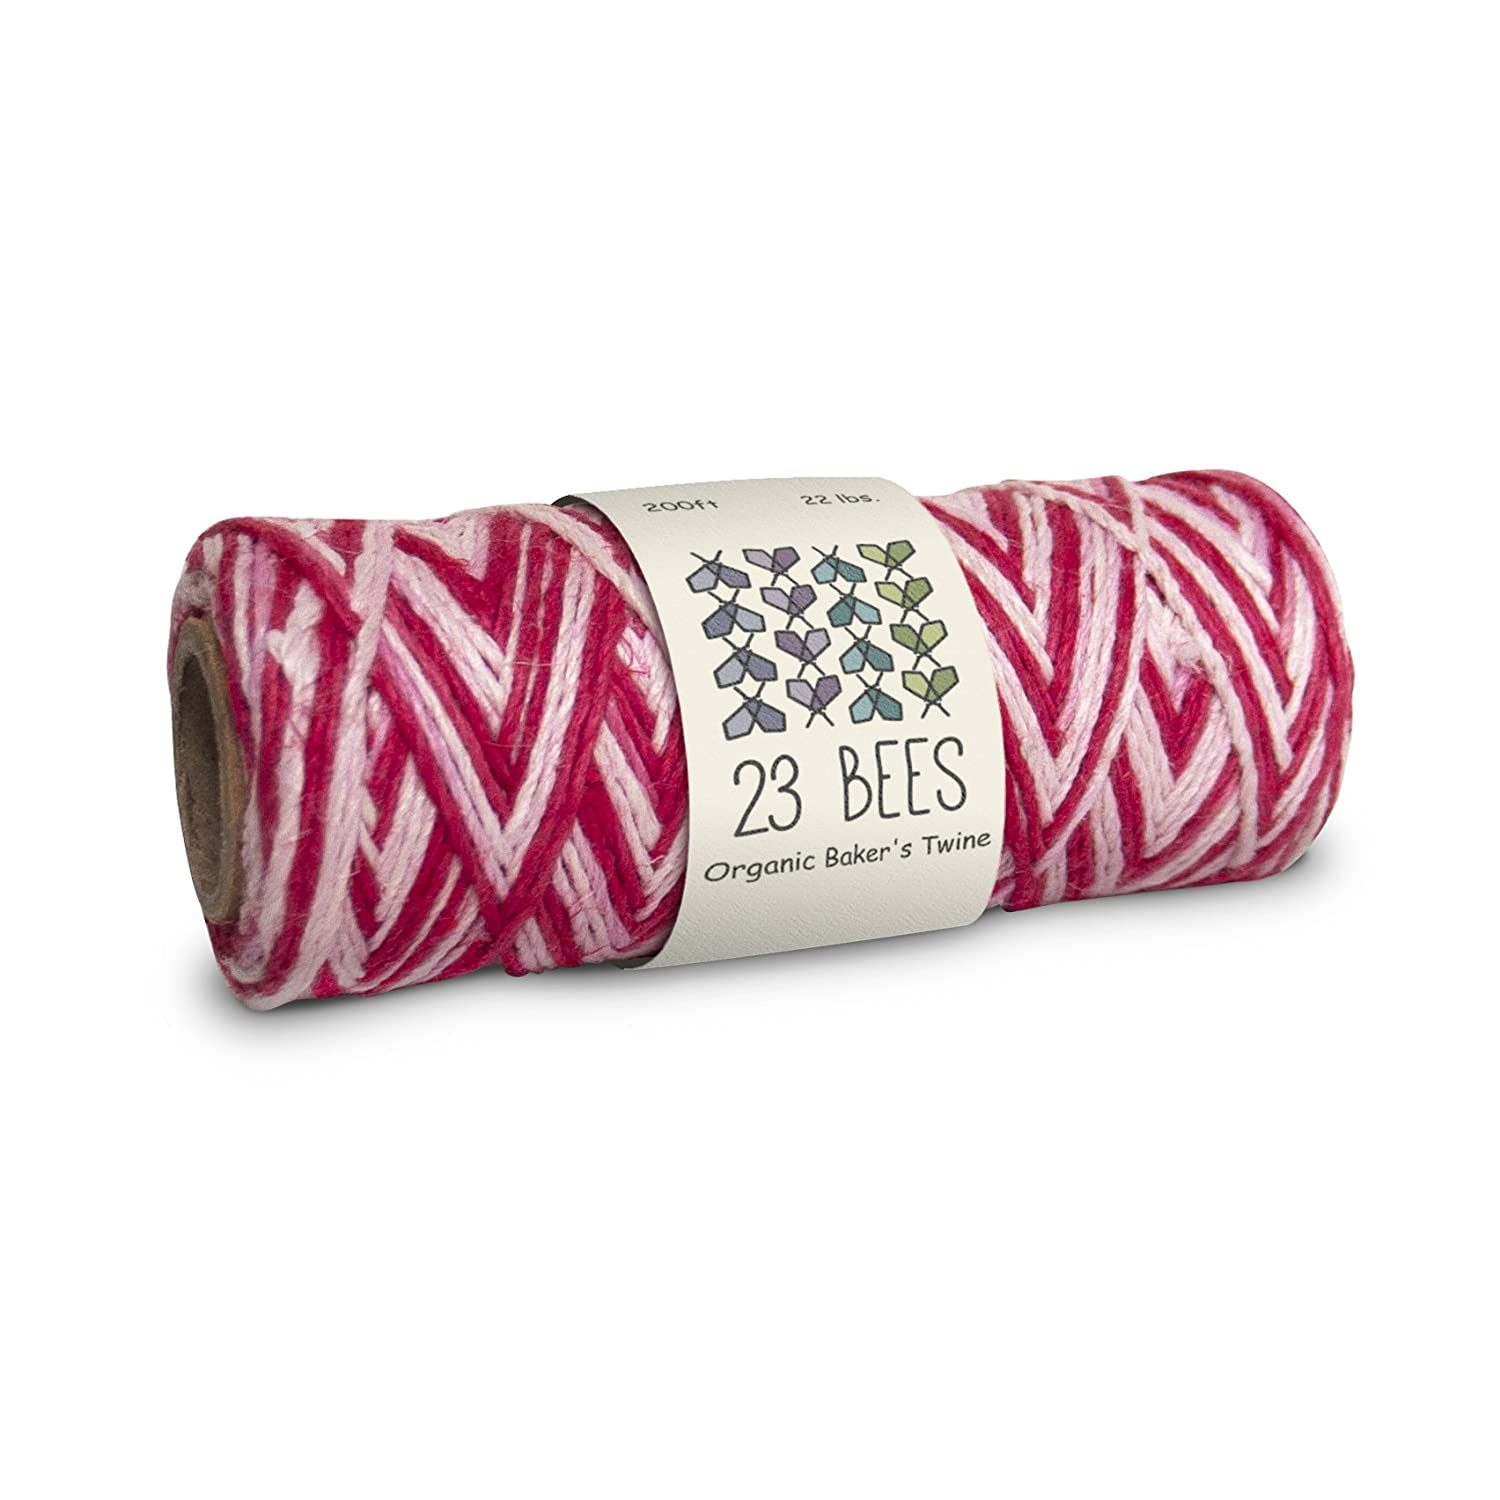 100% Organic Hemp Cord | 23 Bees (200ft x 22 lb. (Red and White))